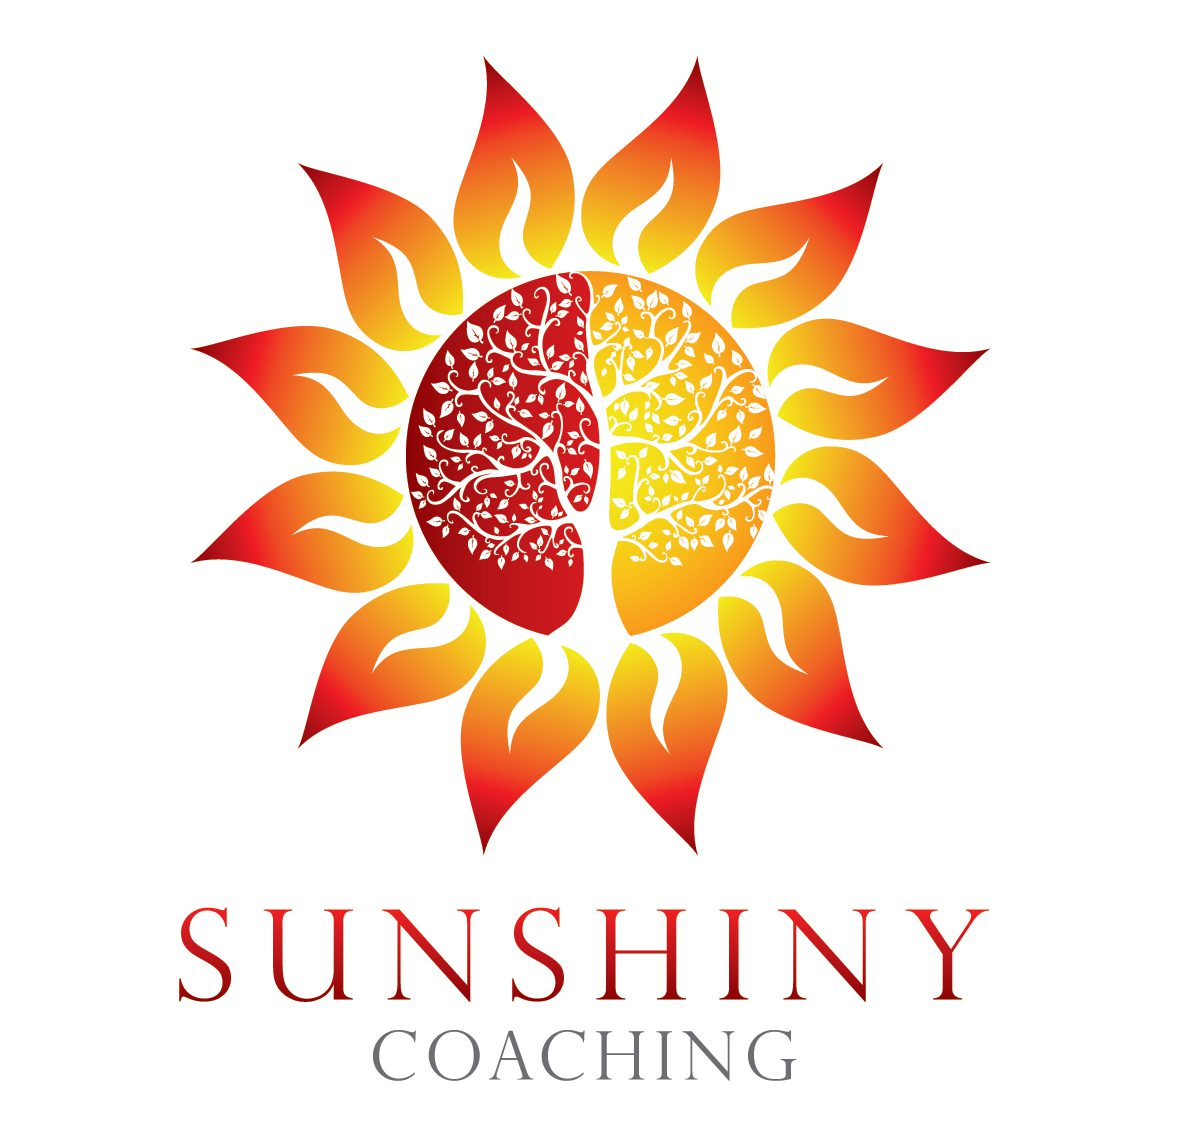 Sunshiny Coaching